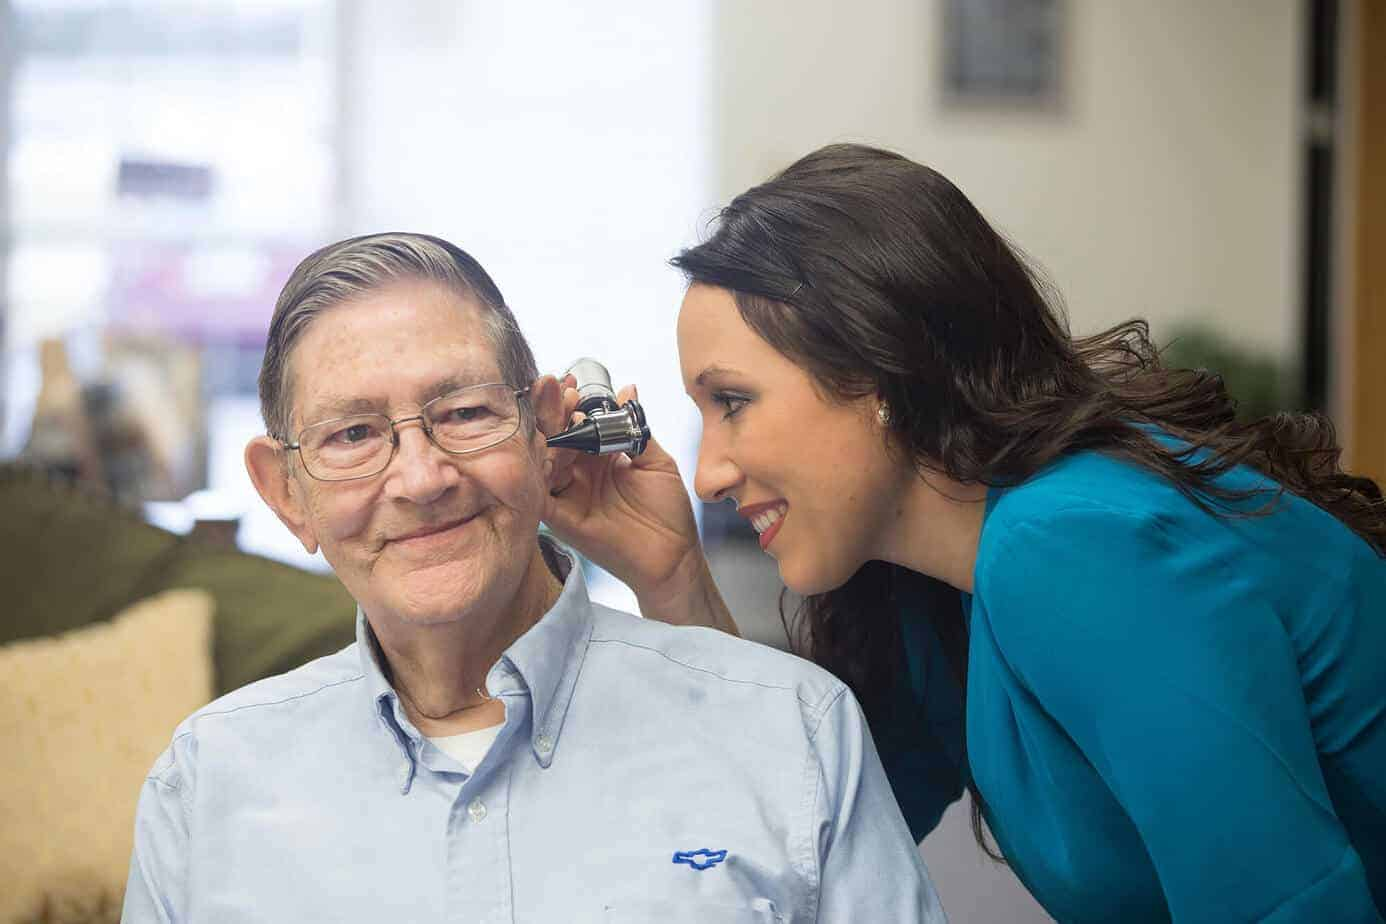 Candace inspecting a patient's ear with an otoscope